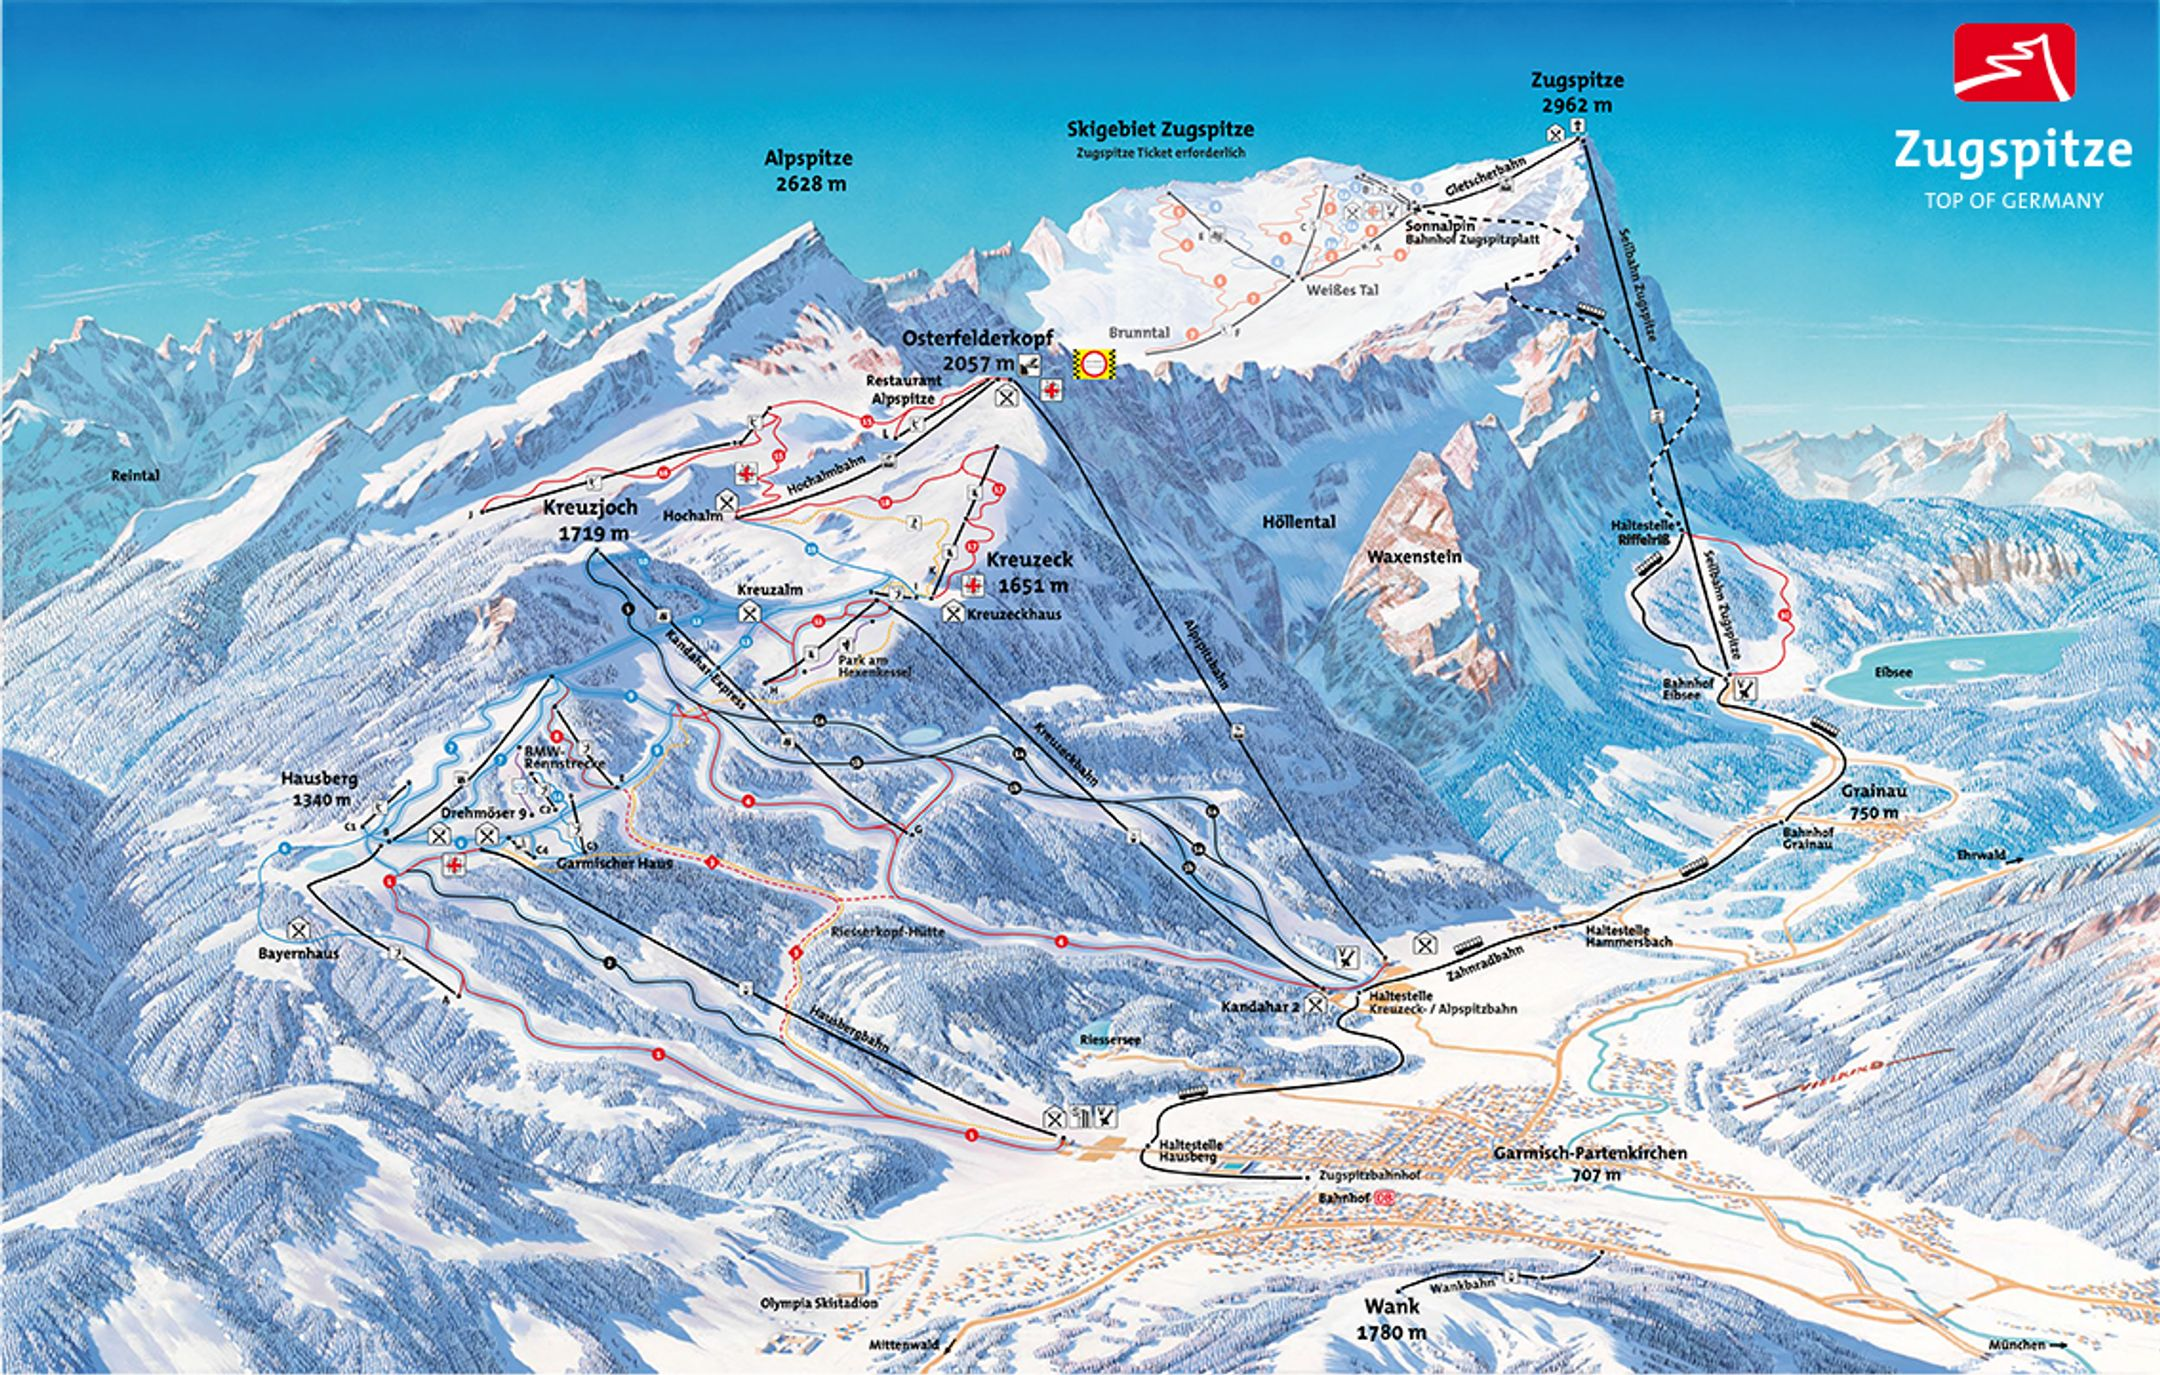 Garmisch ski-resort-trail-map Germany ripatrip